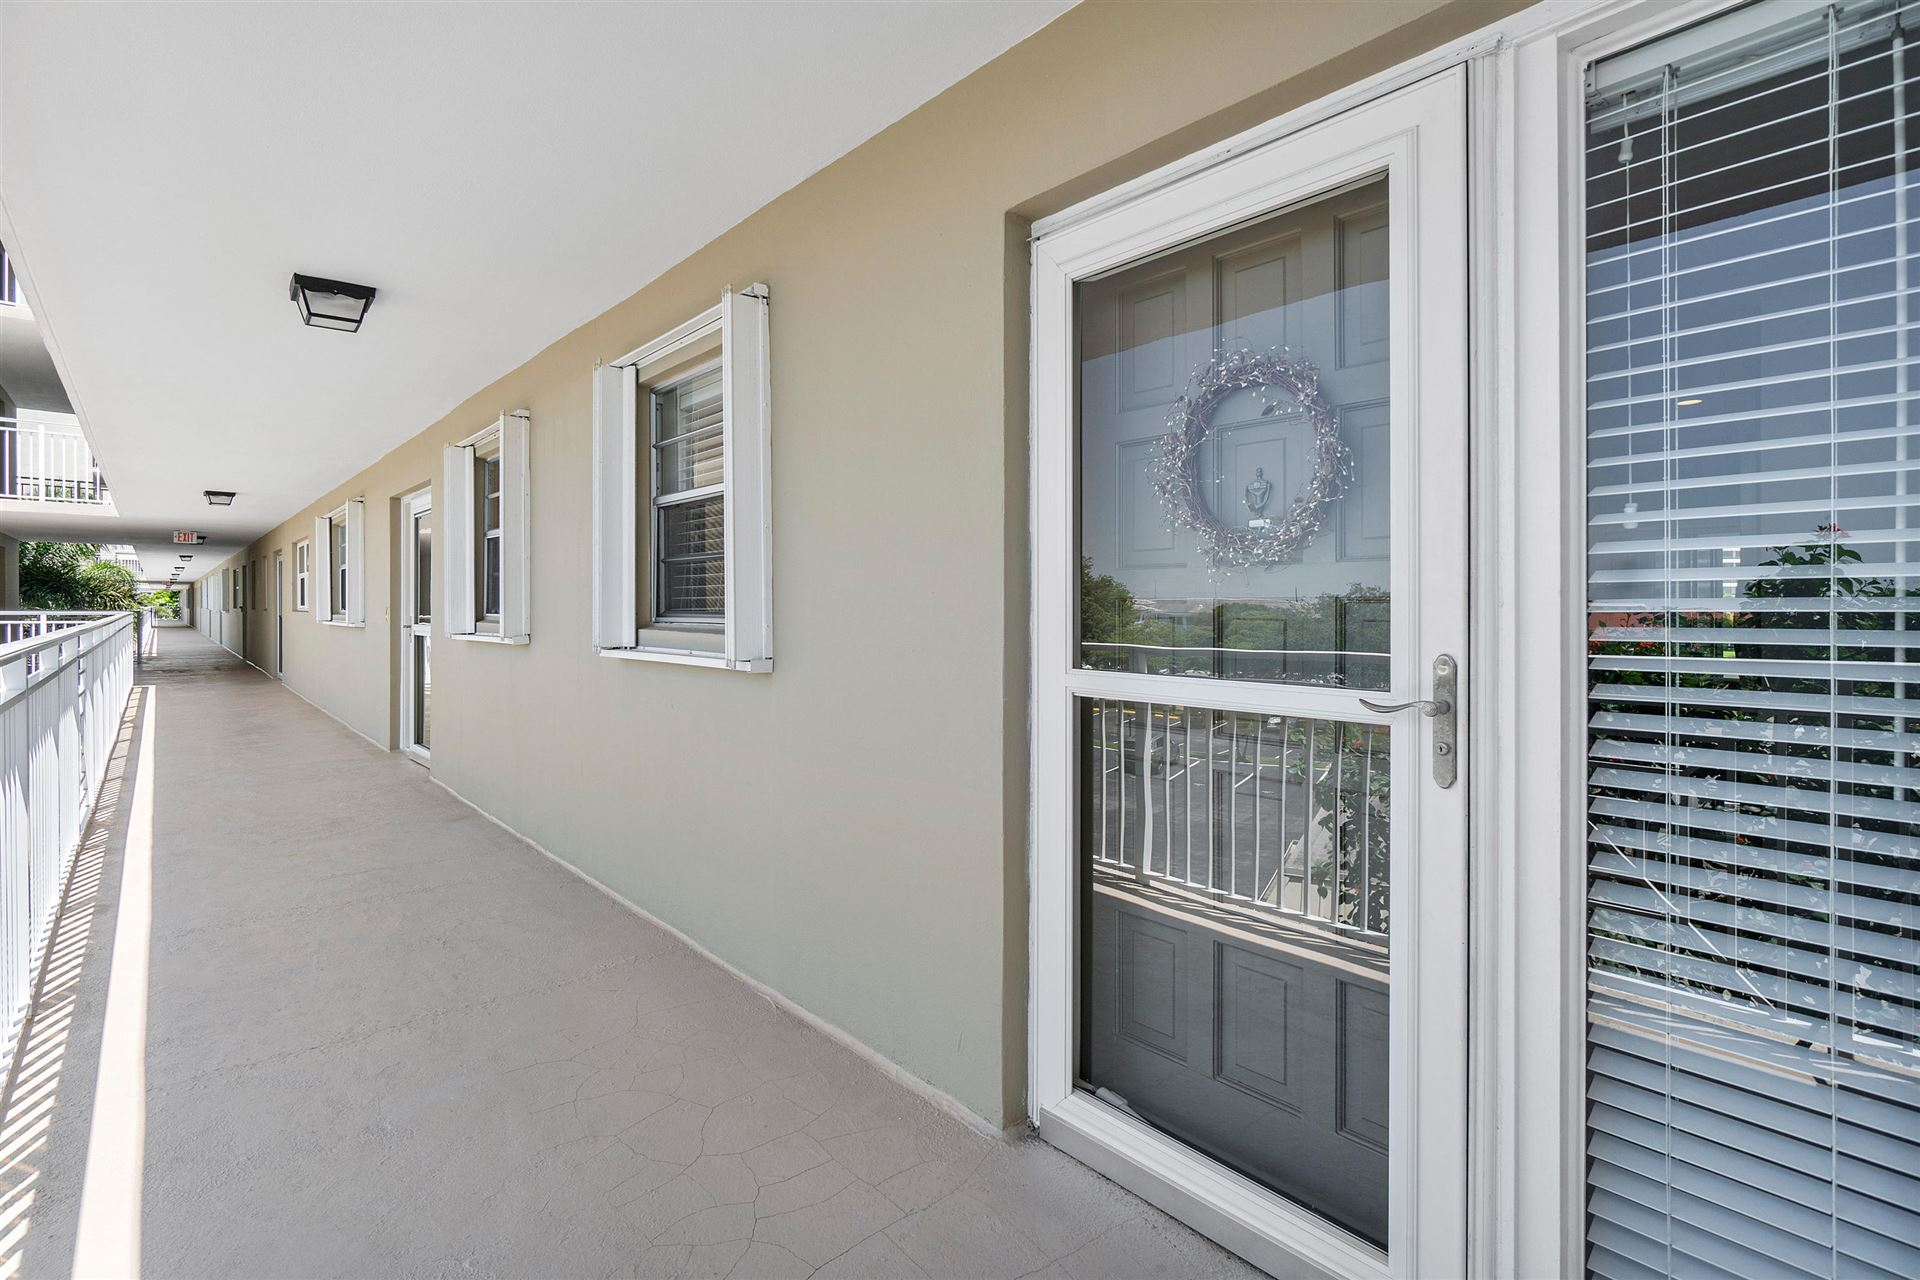 Photo of 44 Yacht Club Drive #312, North Palm Beach, FL 33408 (MLS # RX-10714136)